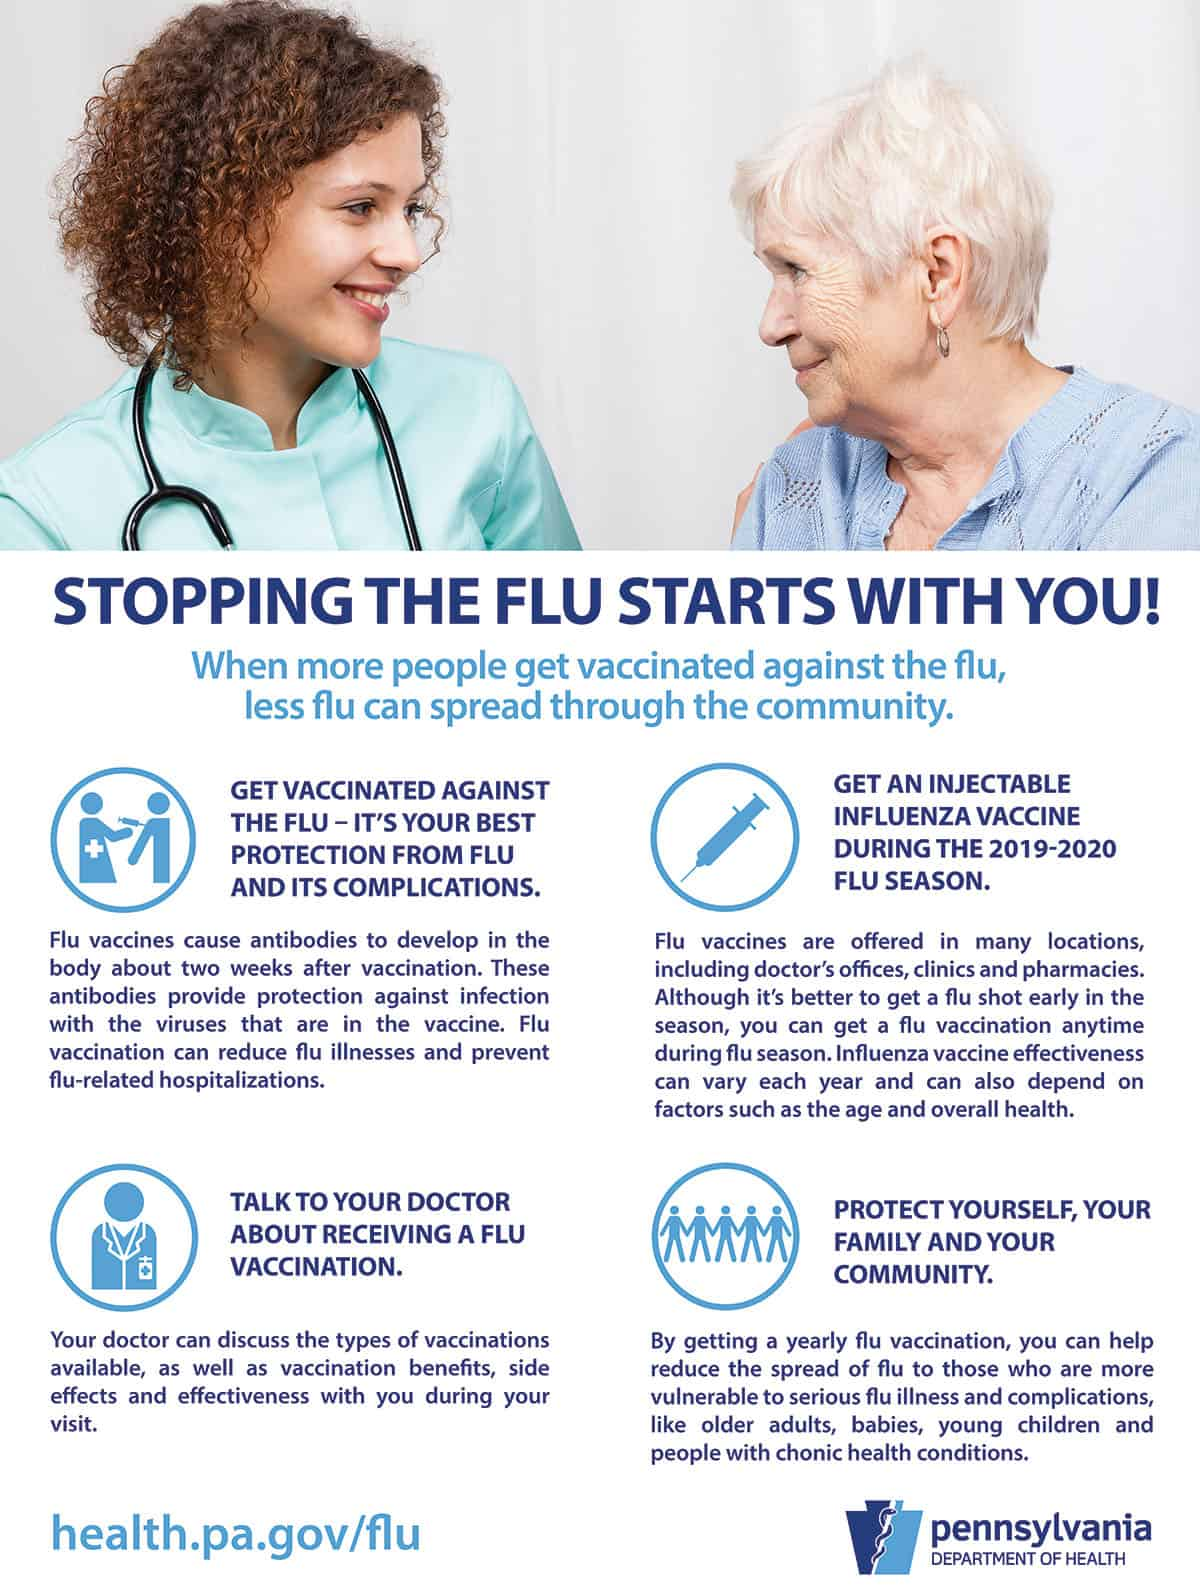 Flu fighting poster for long-term care facilities